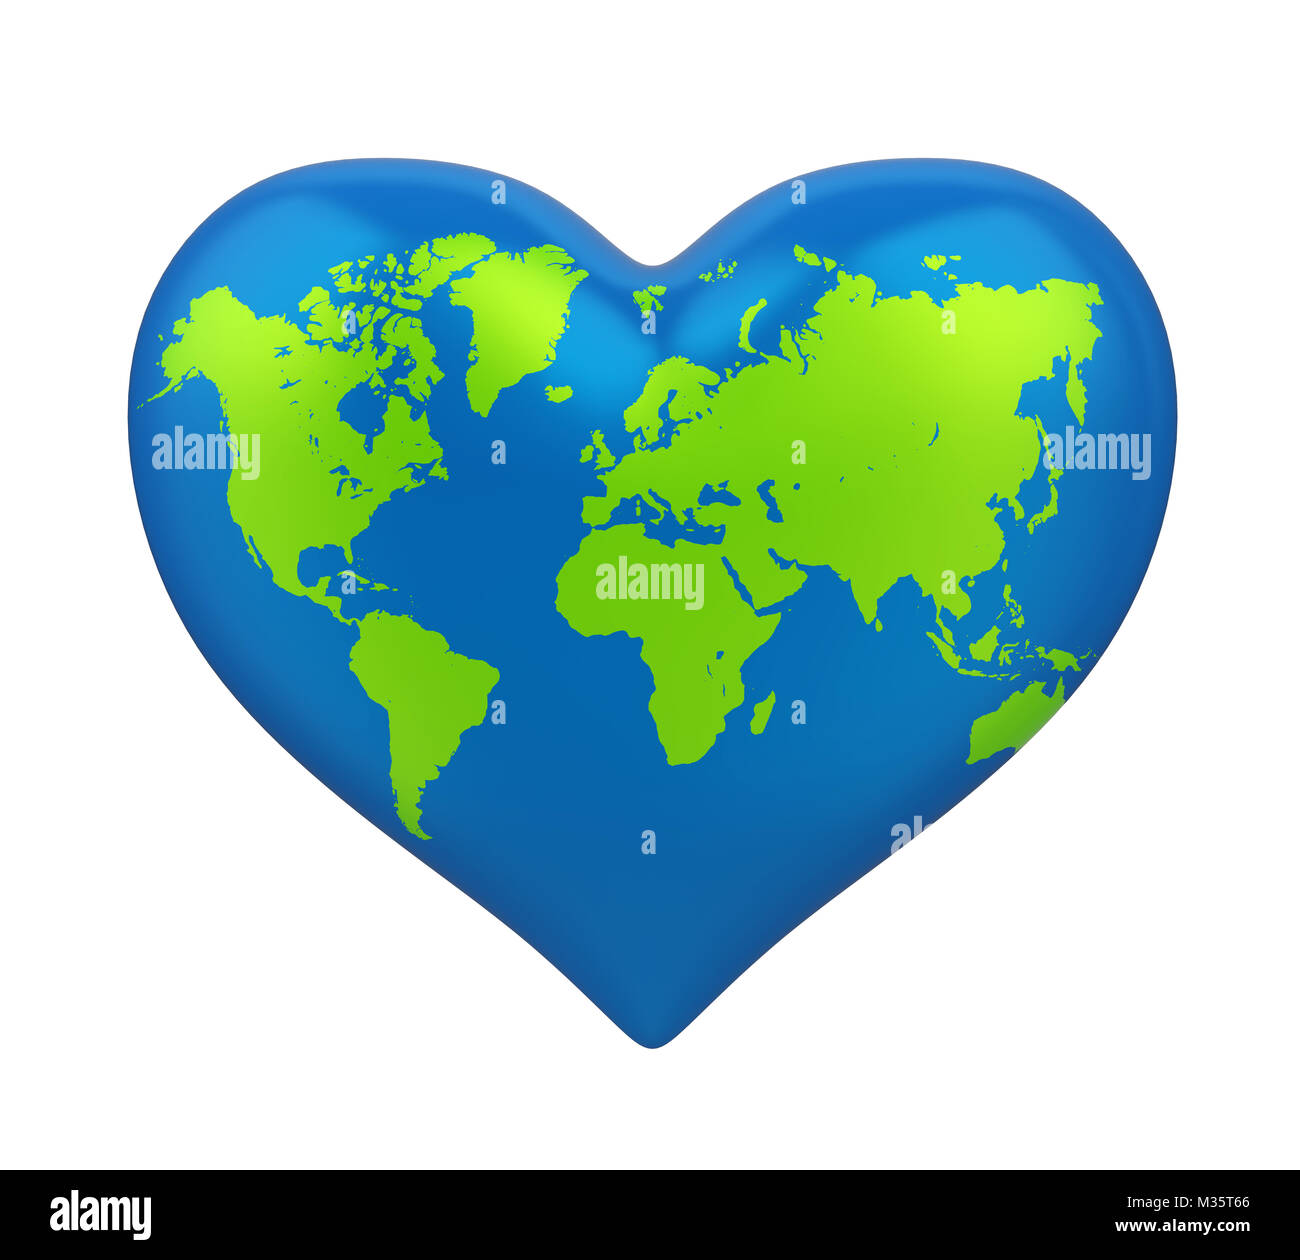 Heart shaped world map stock photos heart shaped world map stock heart shaped earth isolated stock image gumiabroncs Gallery